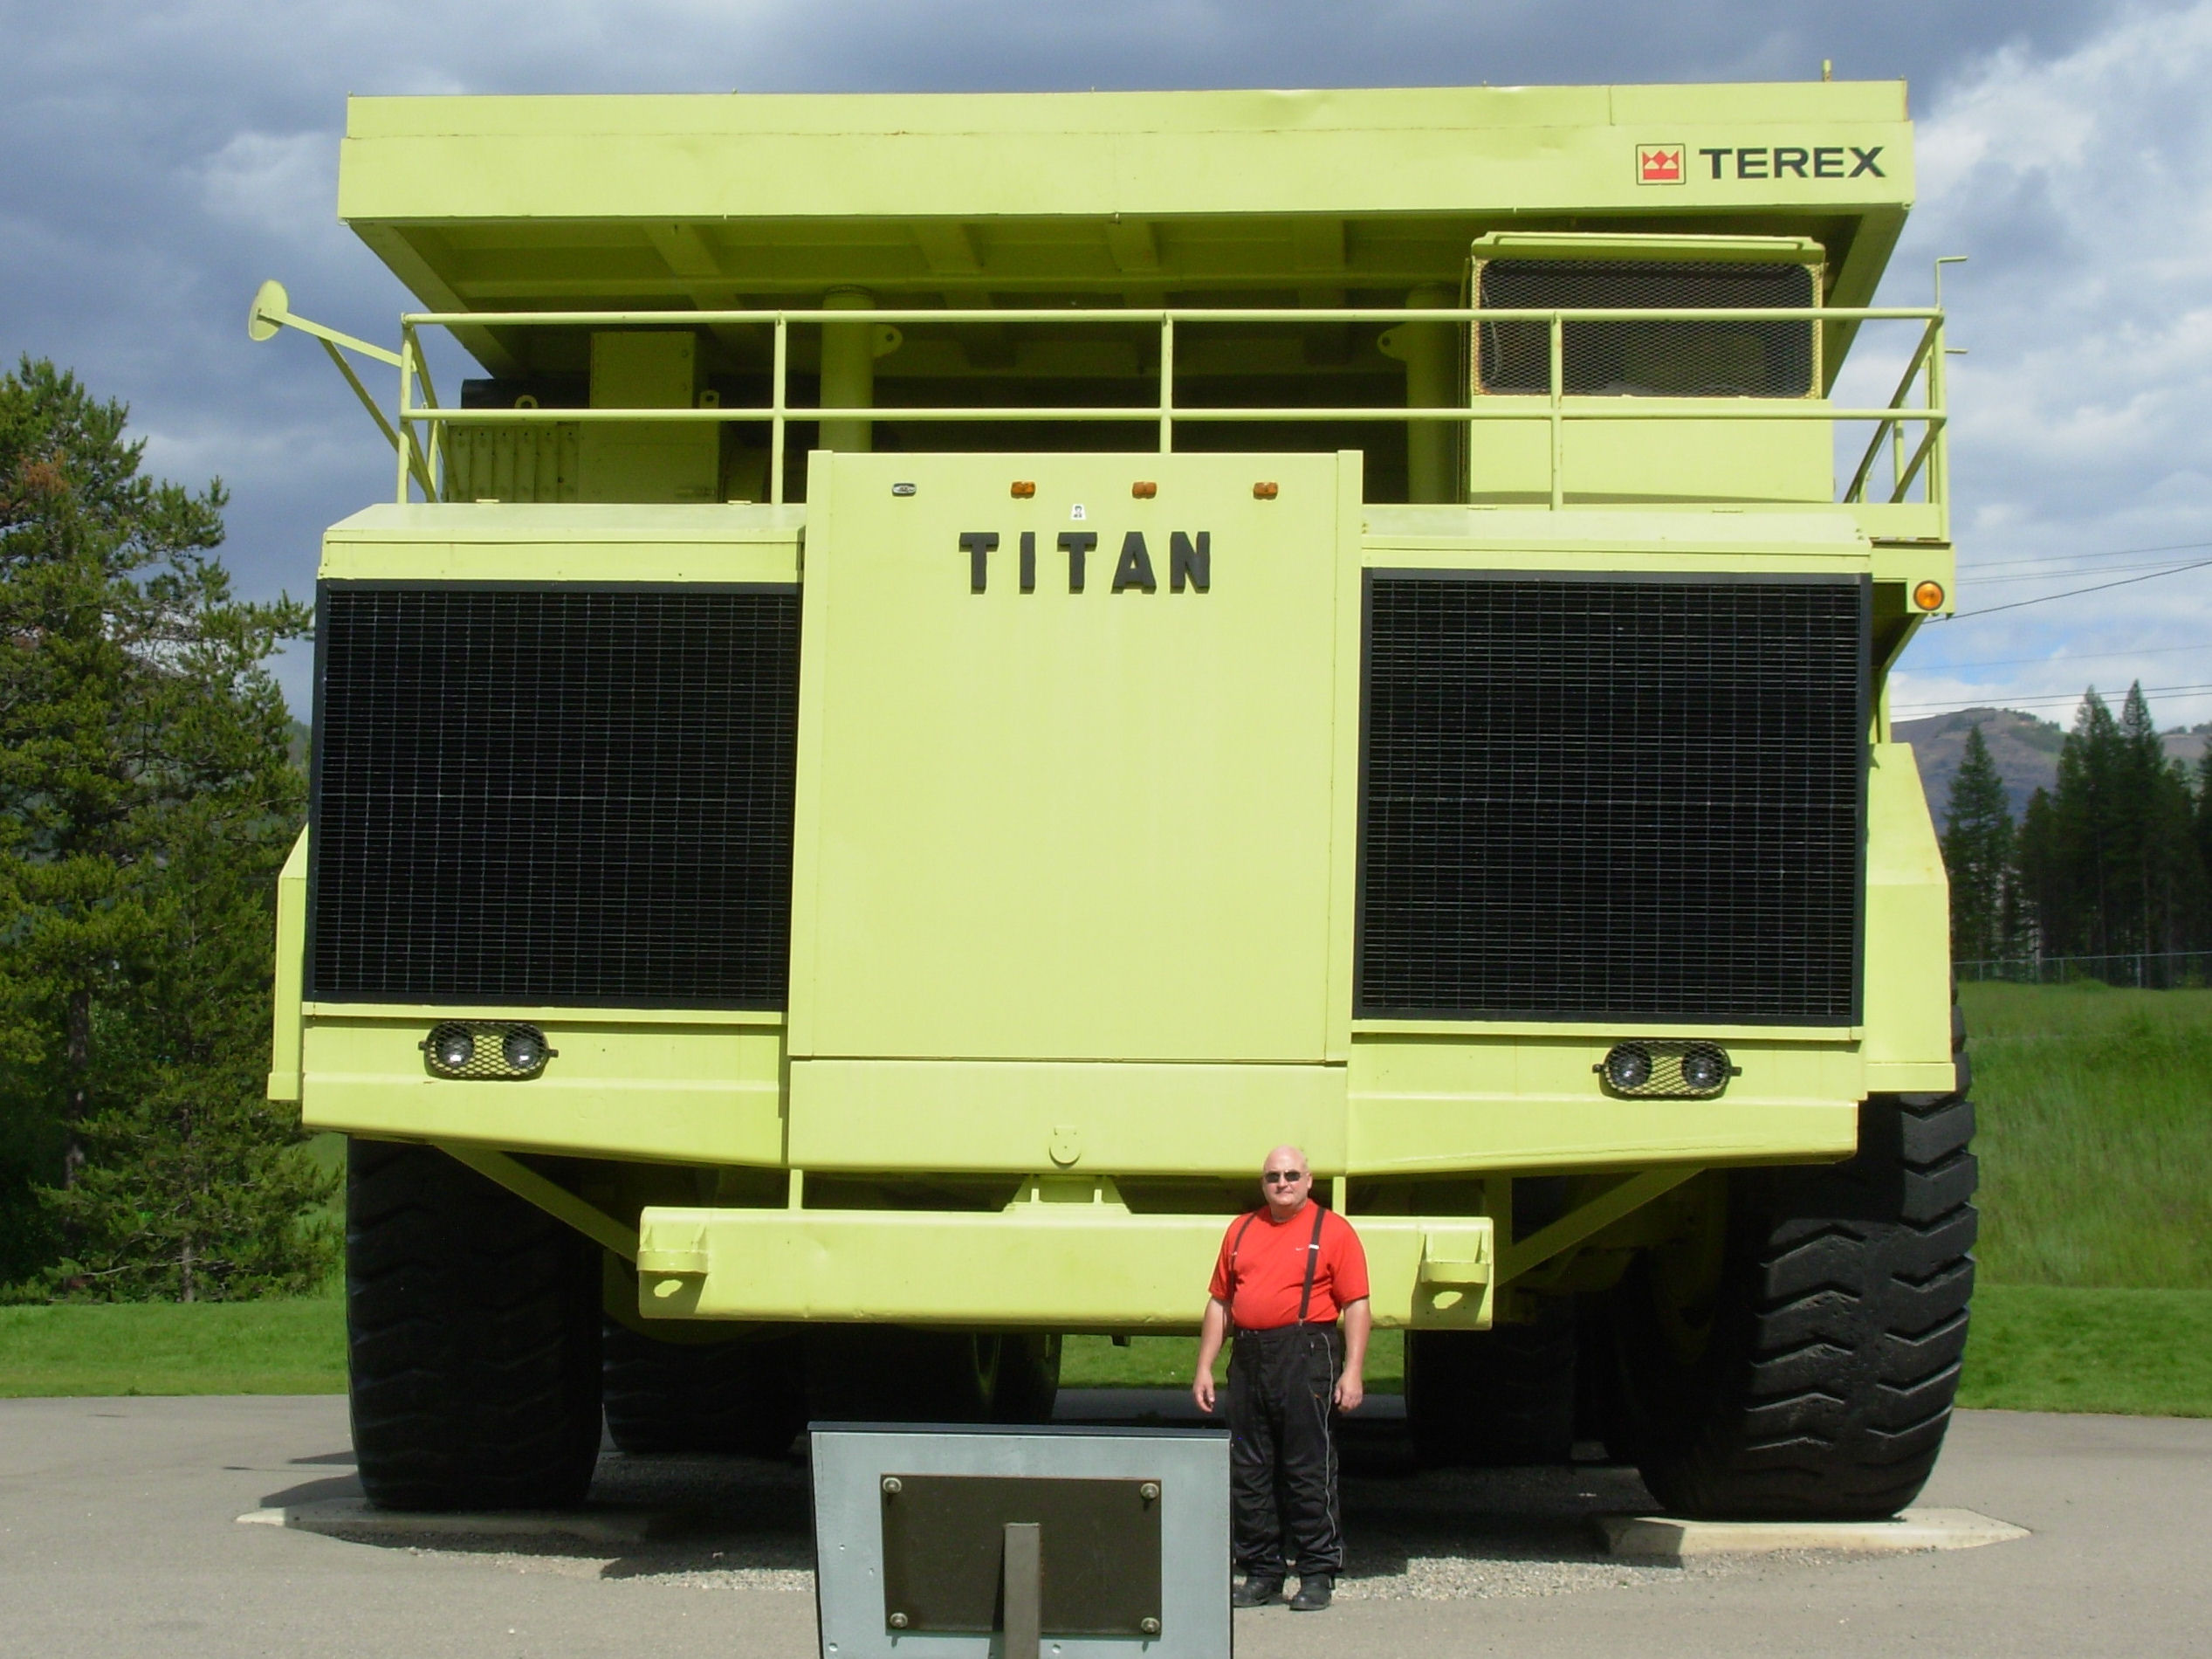 The Terex Titan!